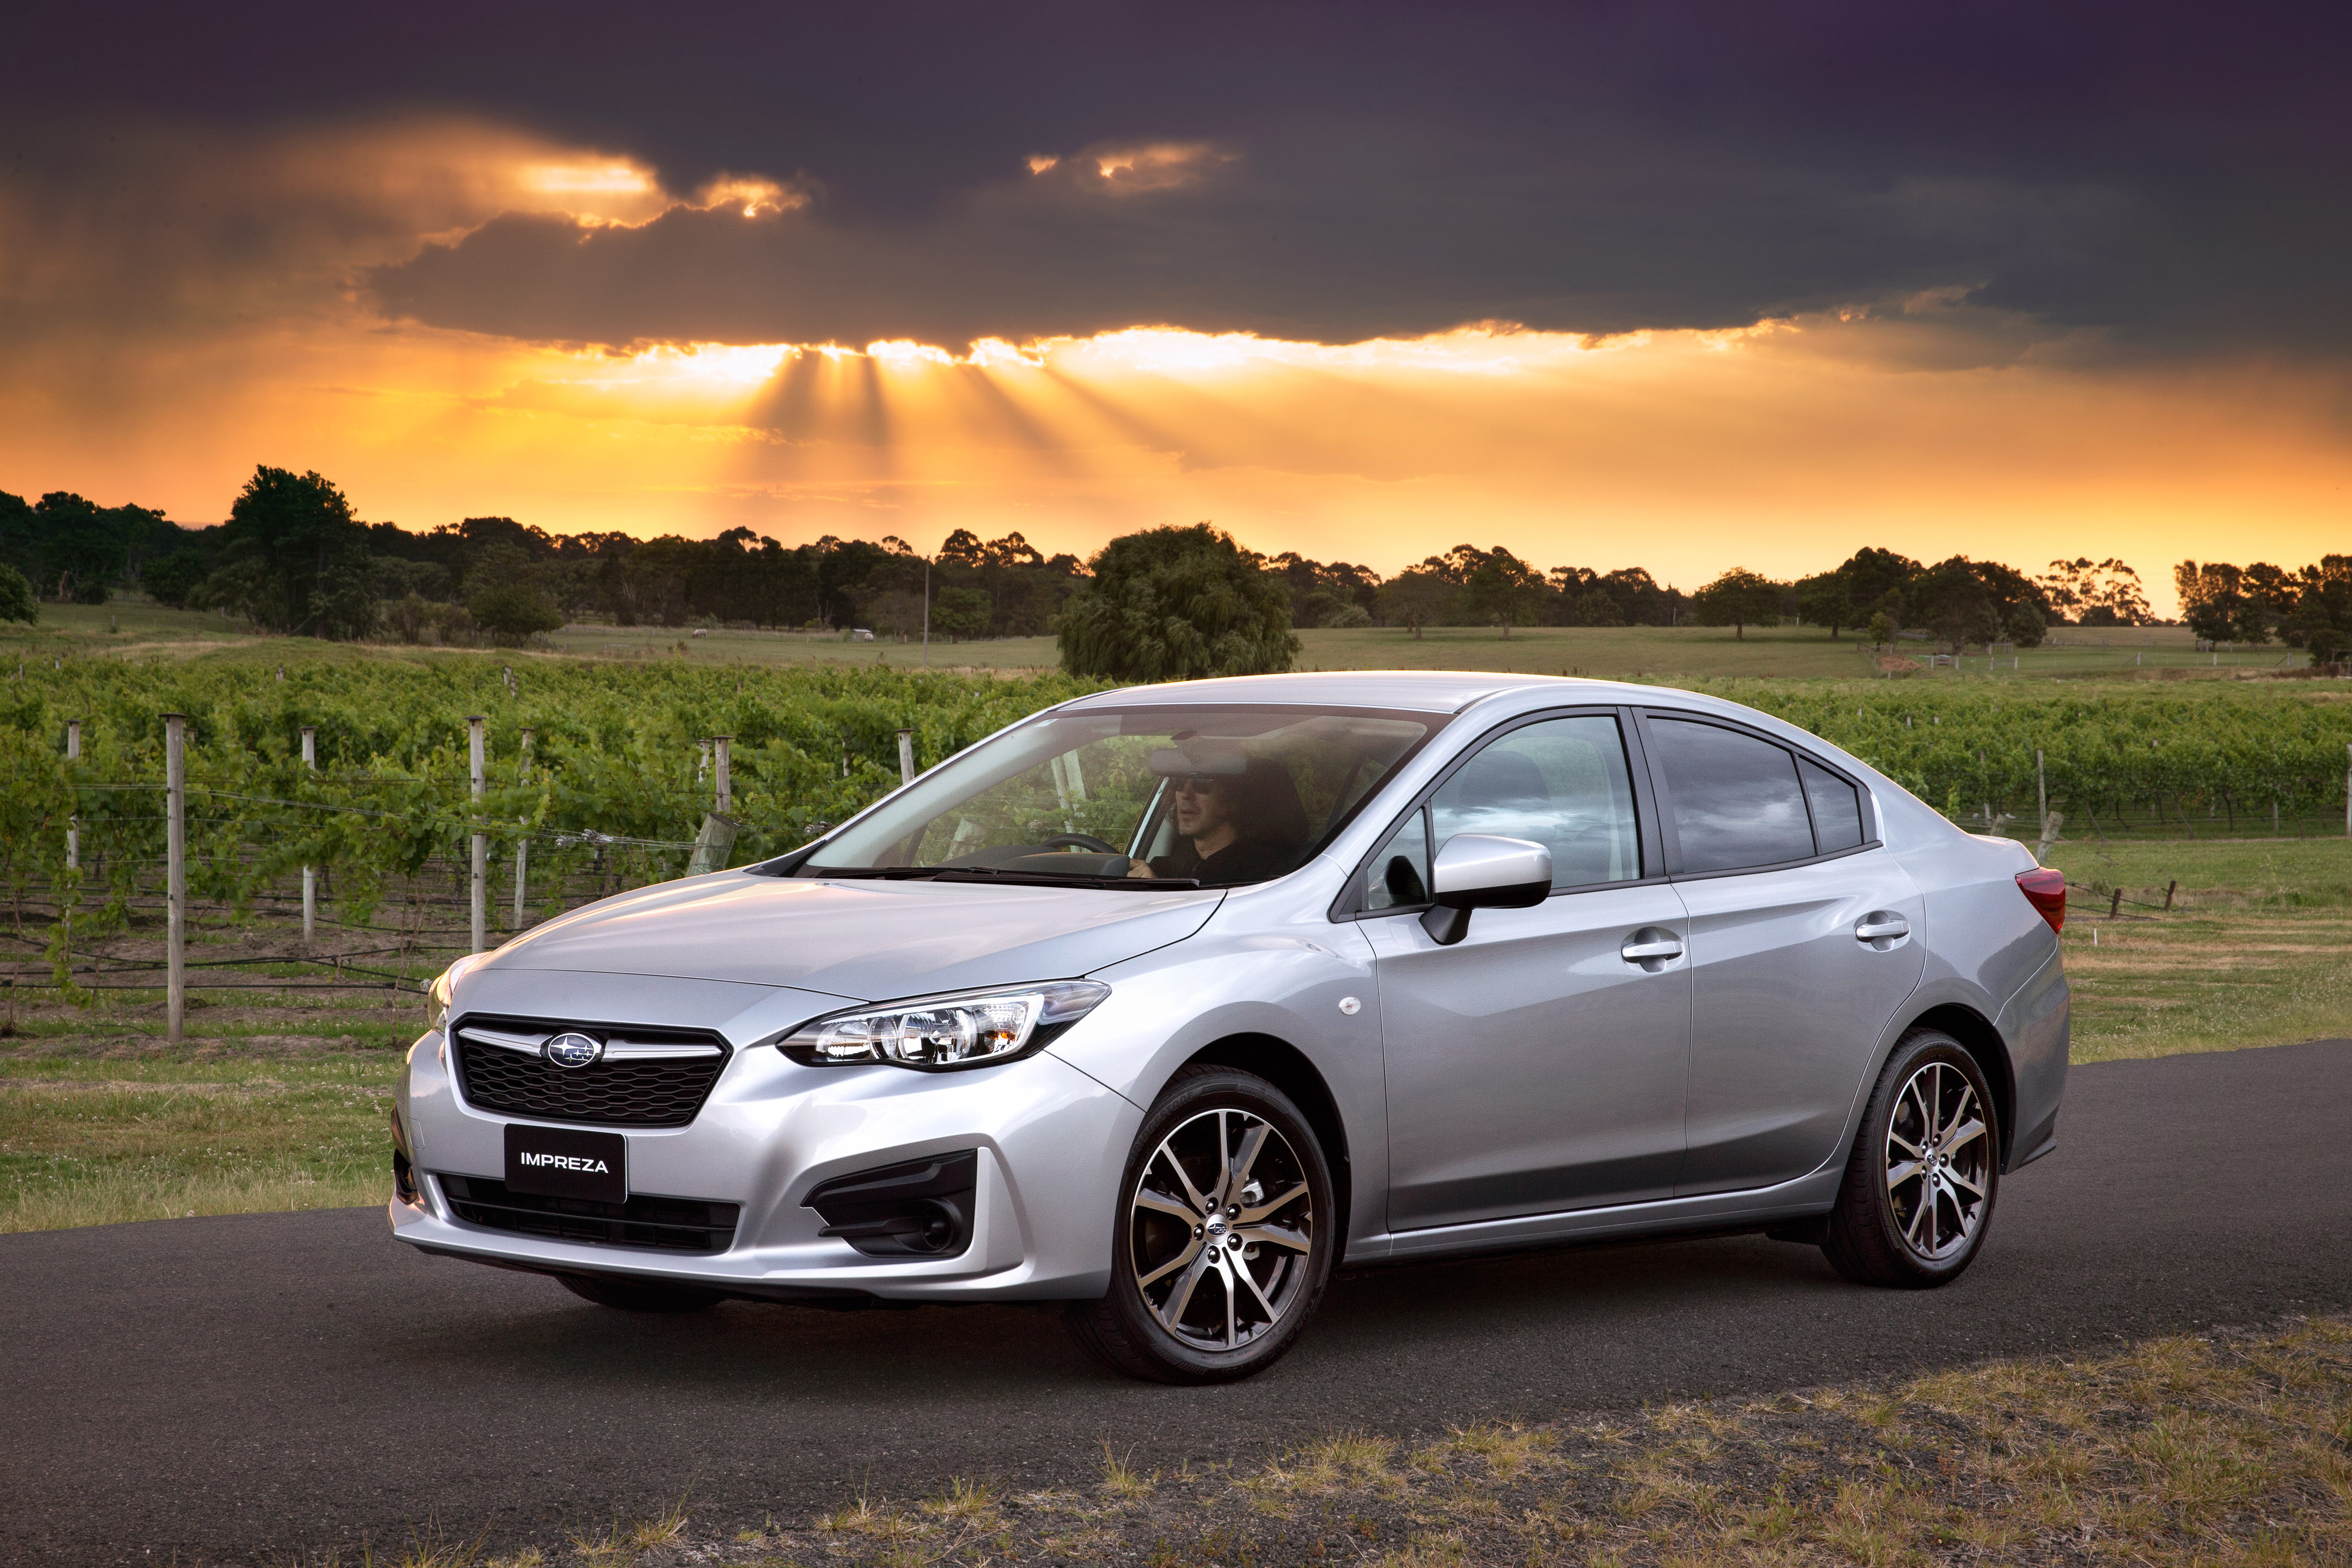 2017 subaru impreza review photos caradvice. Black Bedroom Furniture Sets. Home Design Ideas